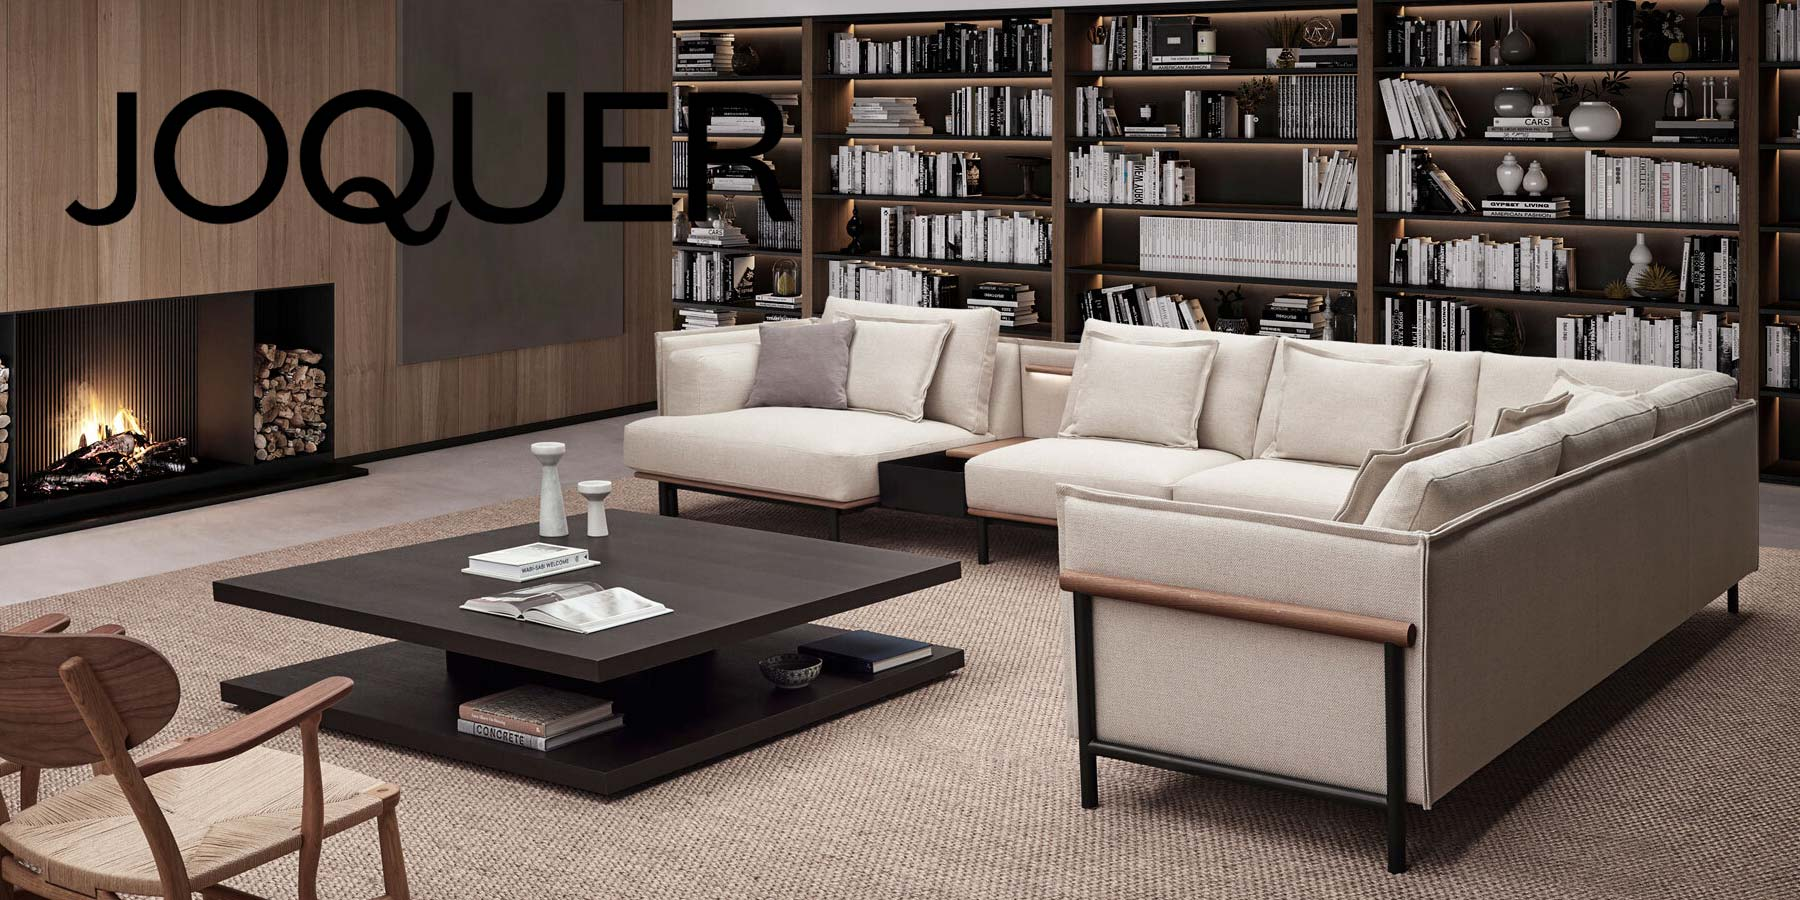 Sofas by Joquer